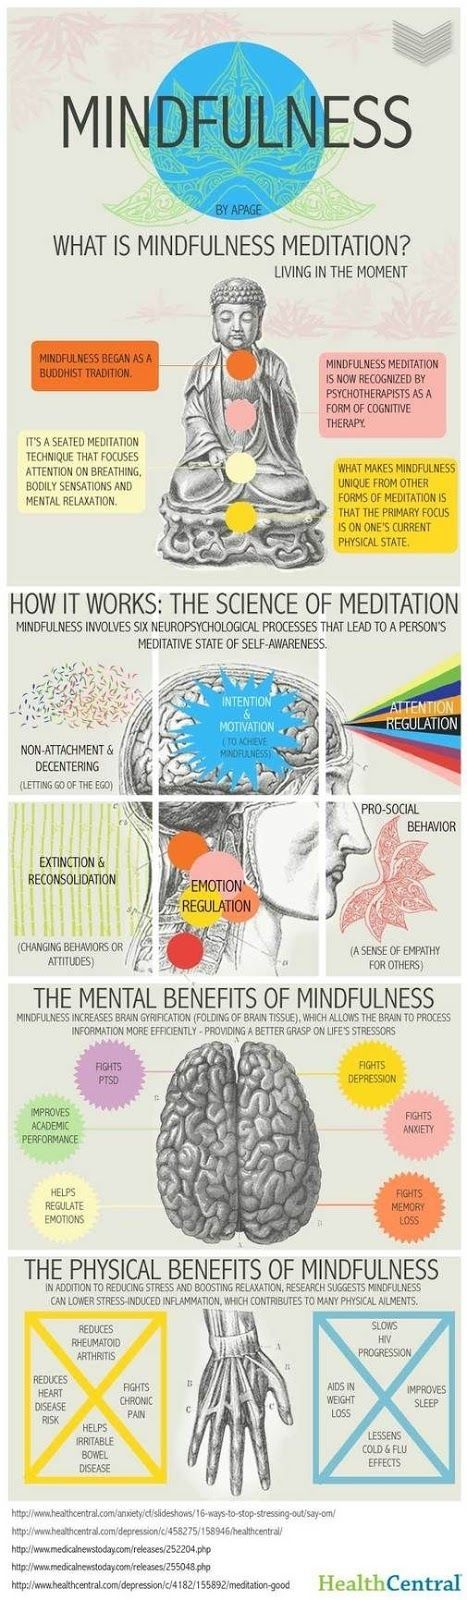 SATURDAY, JUNE 15, 2013 Infographic: What is Mindfulness Meditation? -We've all heard and read about the many health benefits of meditation, mindfulness and living in the moment.